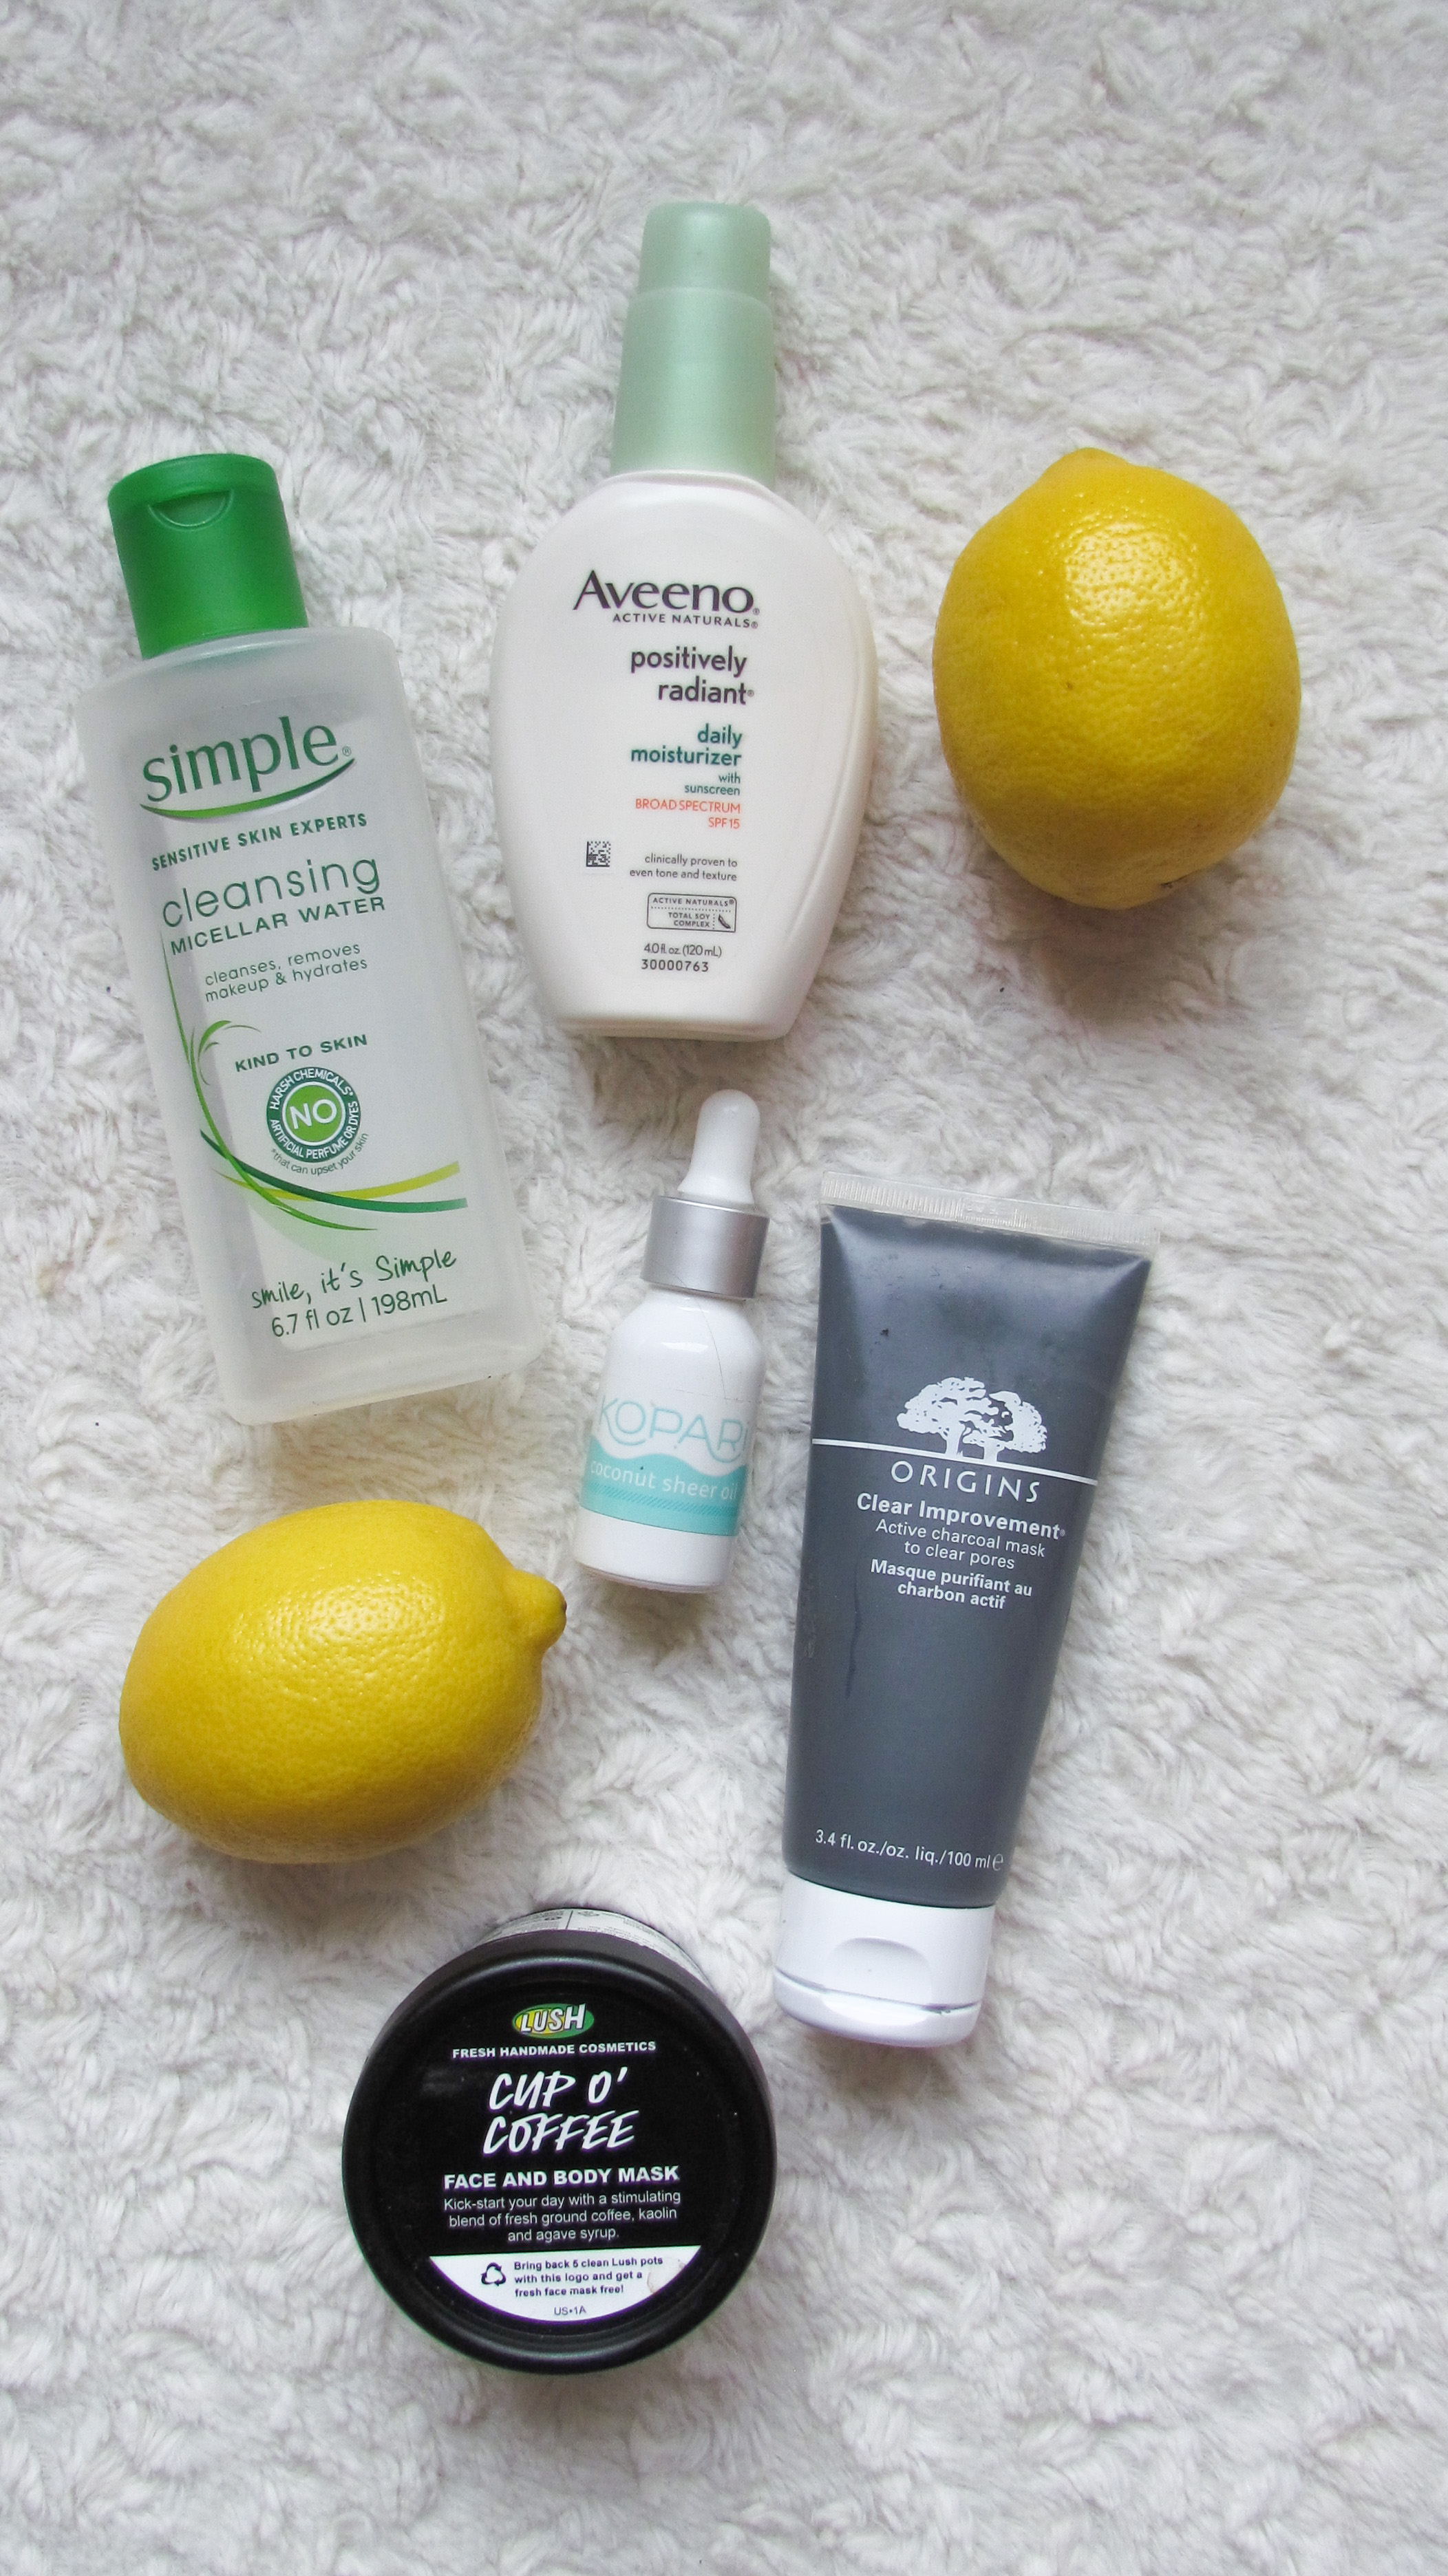 The Skincare Edit - Simple Micellar Water, Aveeno Daily Moisturizer, Kopari Sheer Coconut Oil, Origins charcoal face mask, LUSH cup o' coffee face mask scrub